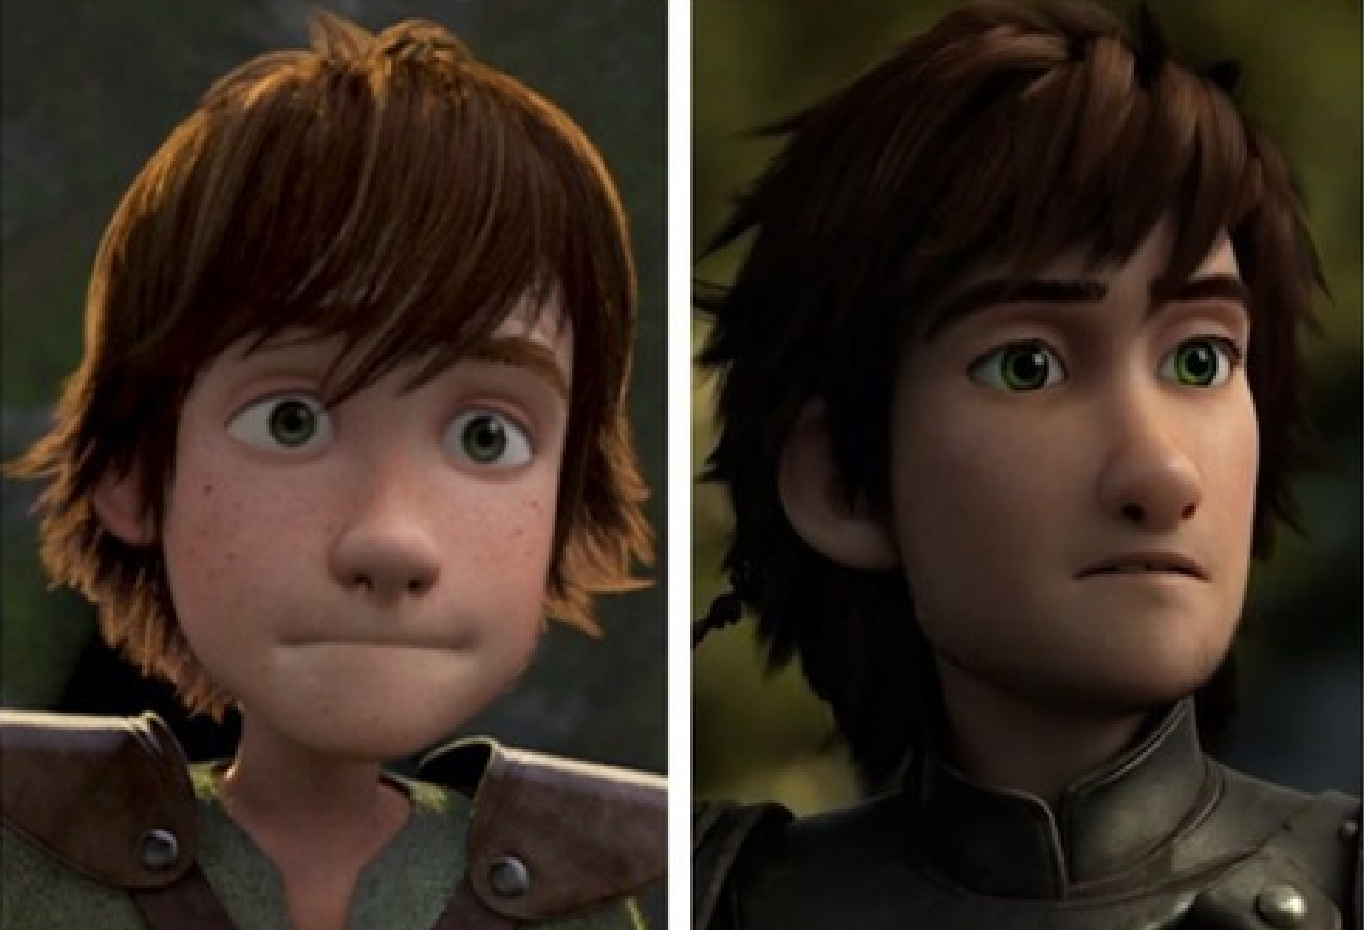 Young Hiccup, With Mop Of Hair, Awkward Body And Big Eyes Alongside 20 Year